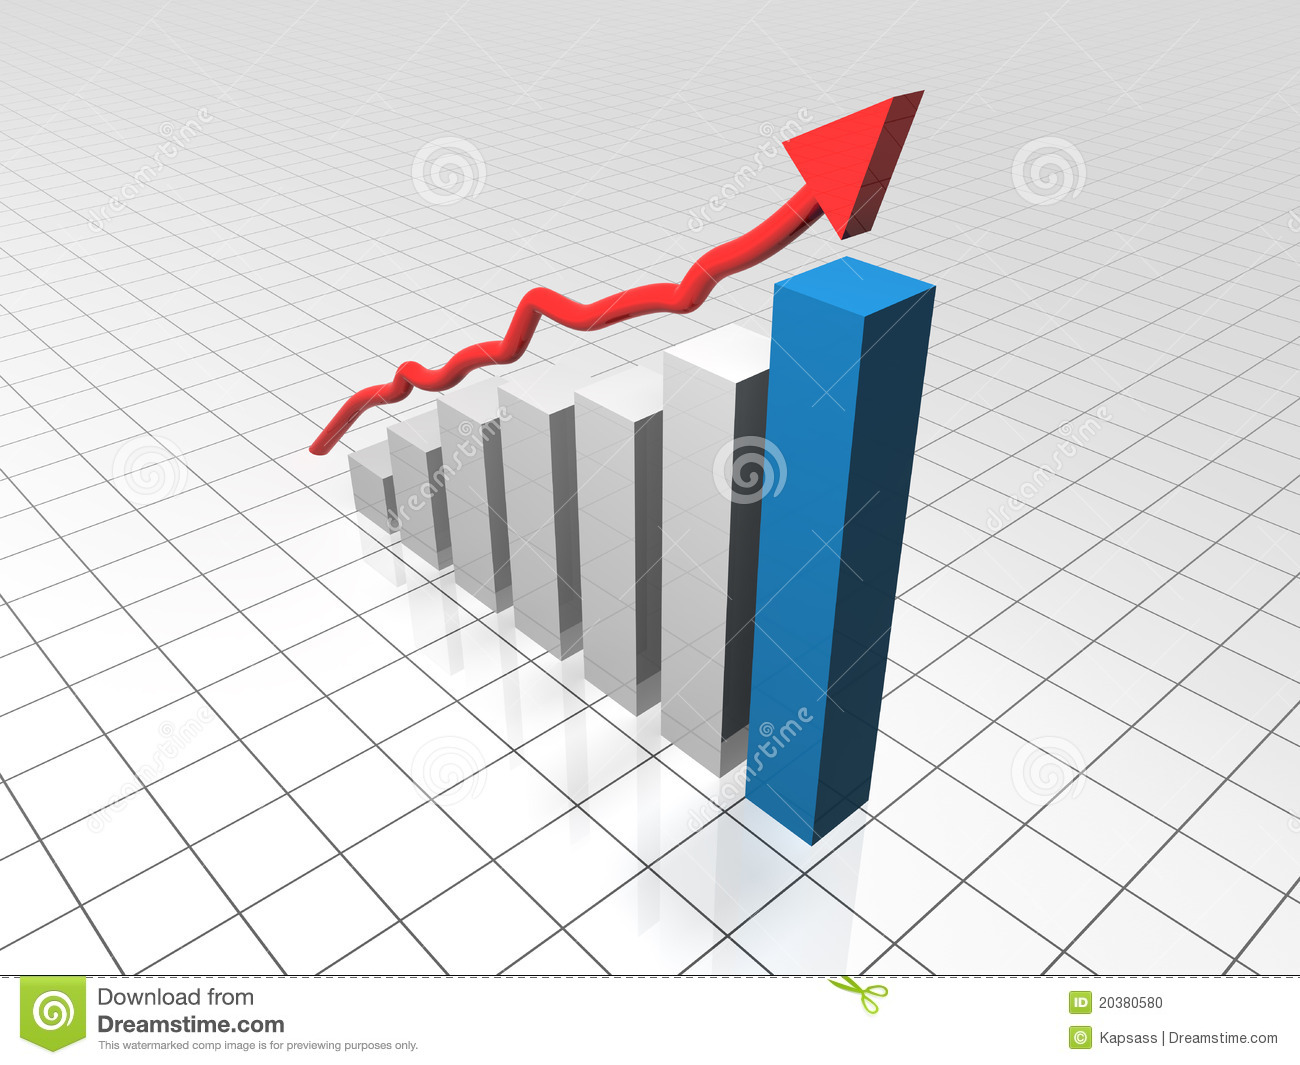 how to add yoy growth to bar graph